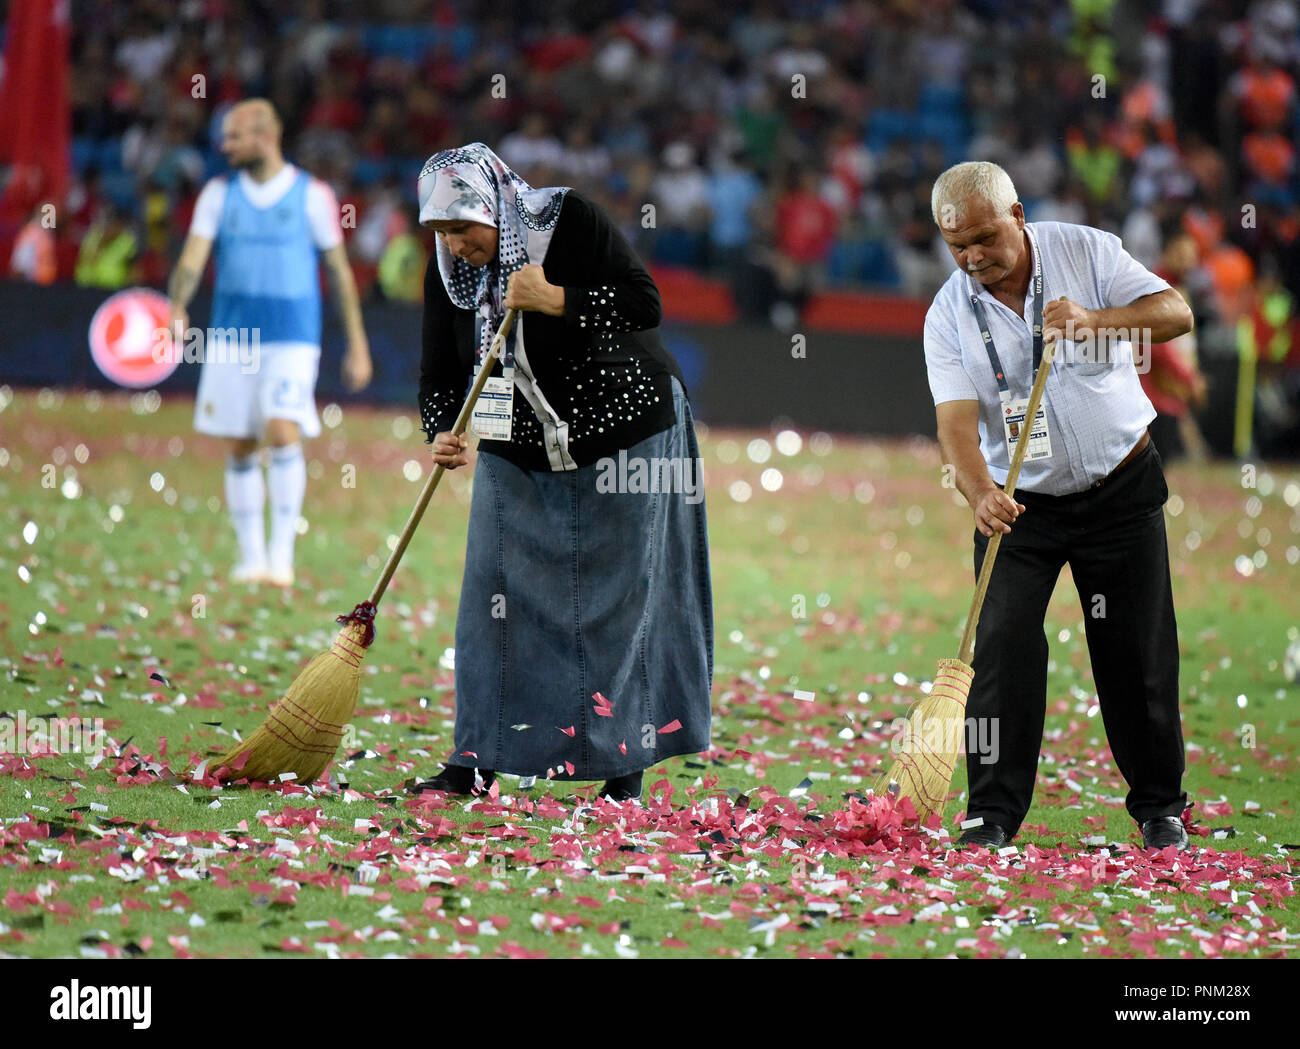 Trabzon, Turkey - September 7, 2018. Workers cleaning up confetti from pitch during half-time break in UEFA Nations League match Turkey vs Russia in T - Stock Image